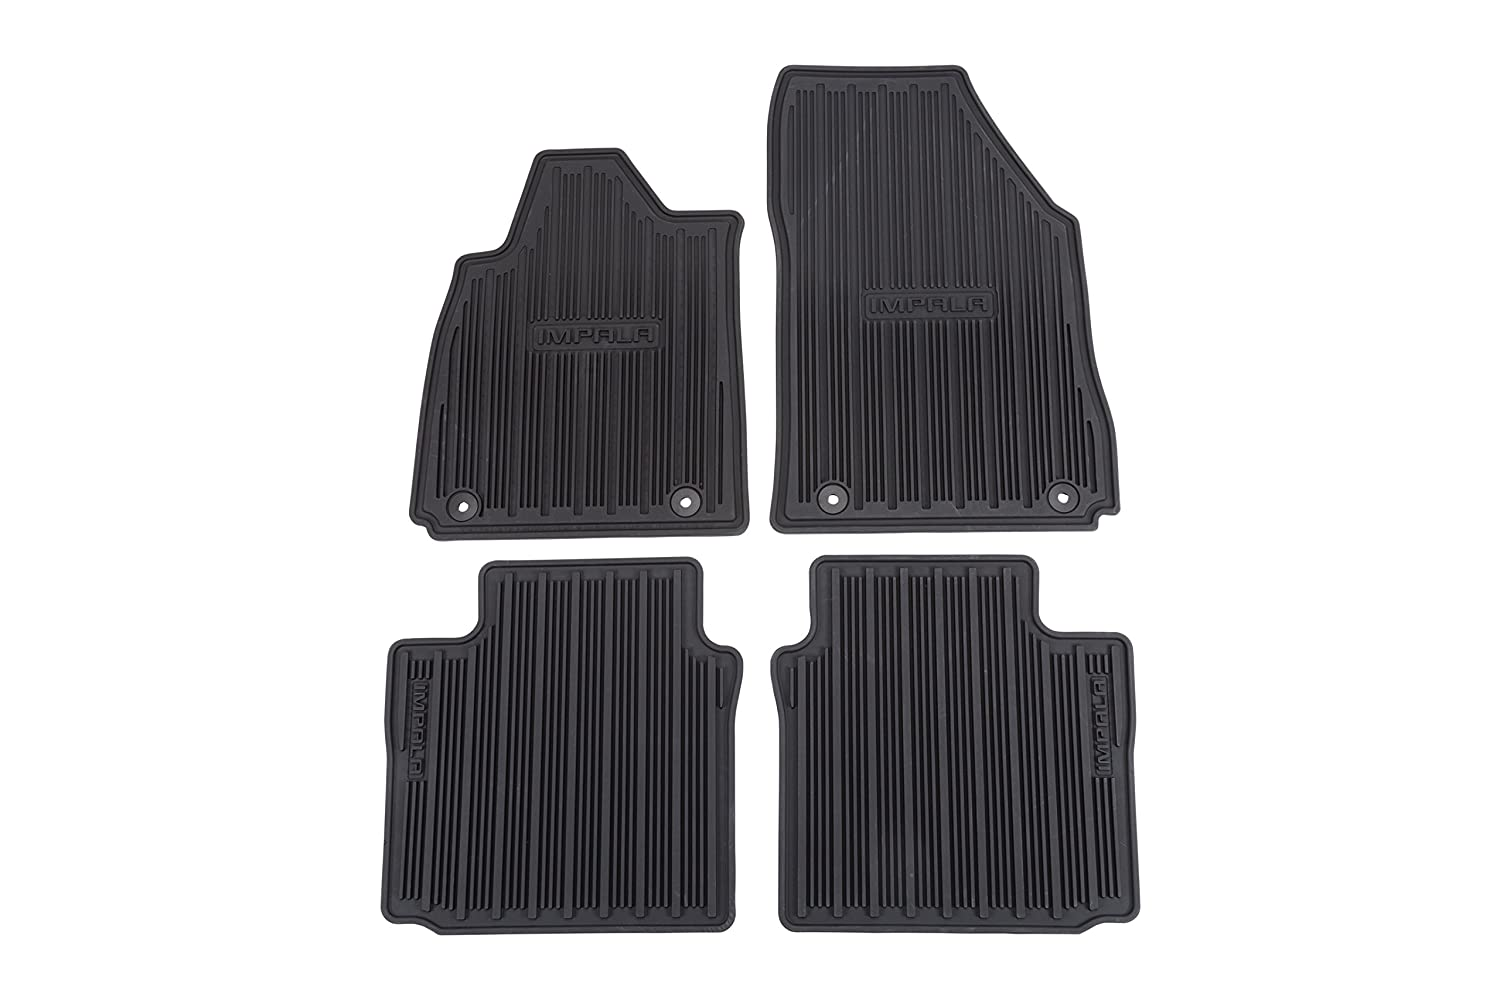 GM Accessories 22766717 Front and Rear All-Weather Floor Mats in Black with Camaro Logo General Motors